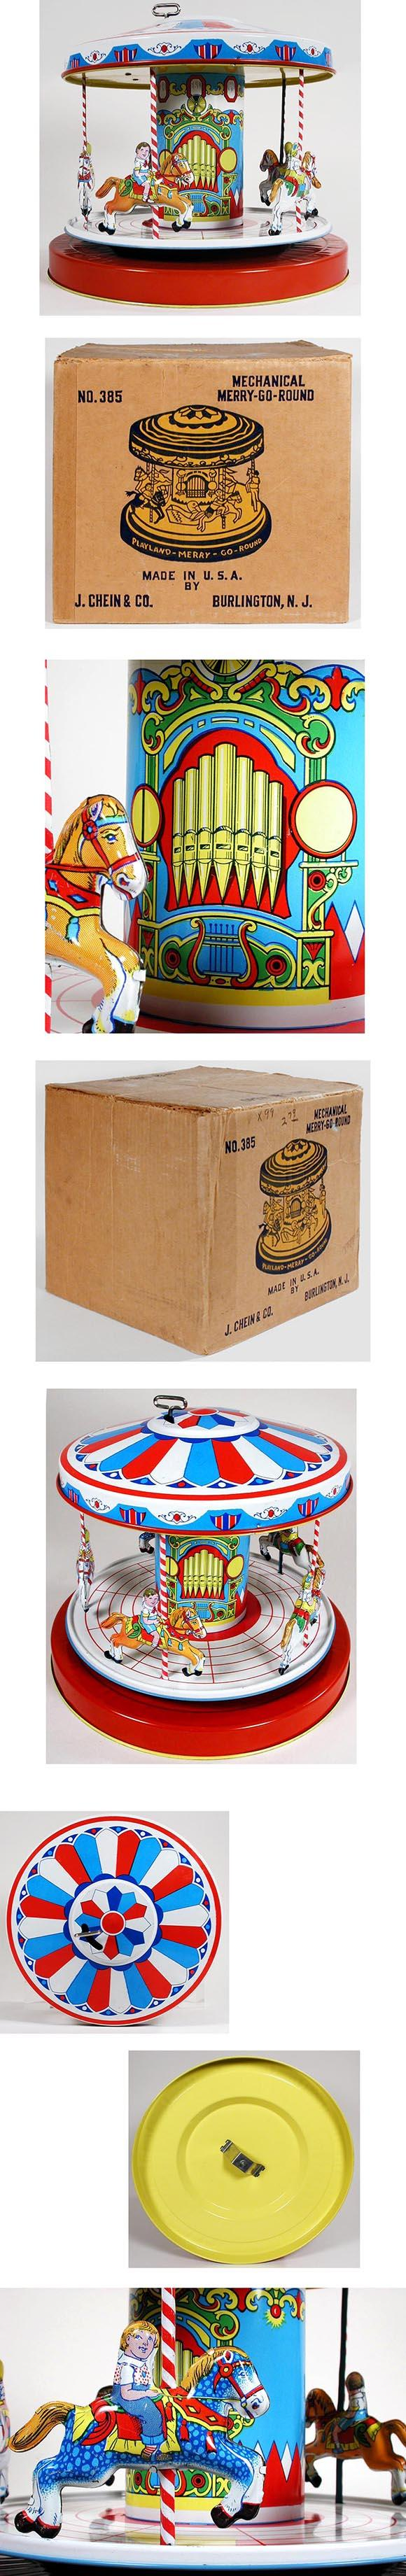 1950 Chein, No.385 Merry-Go-Round in Original Box